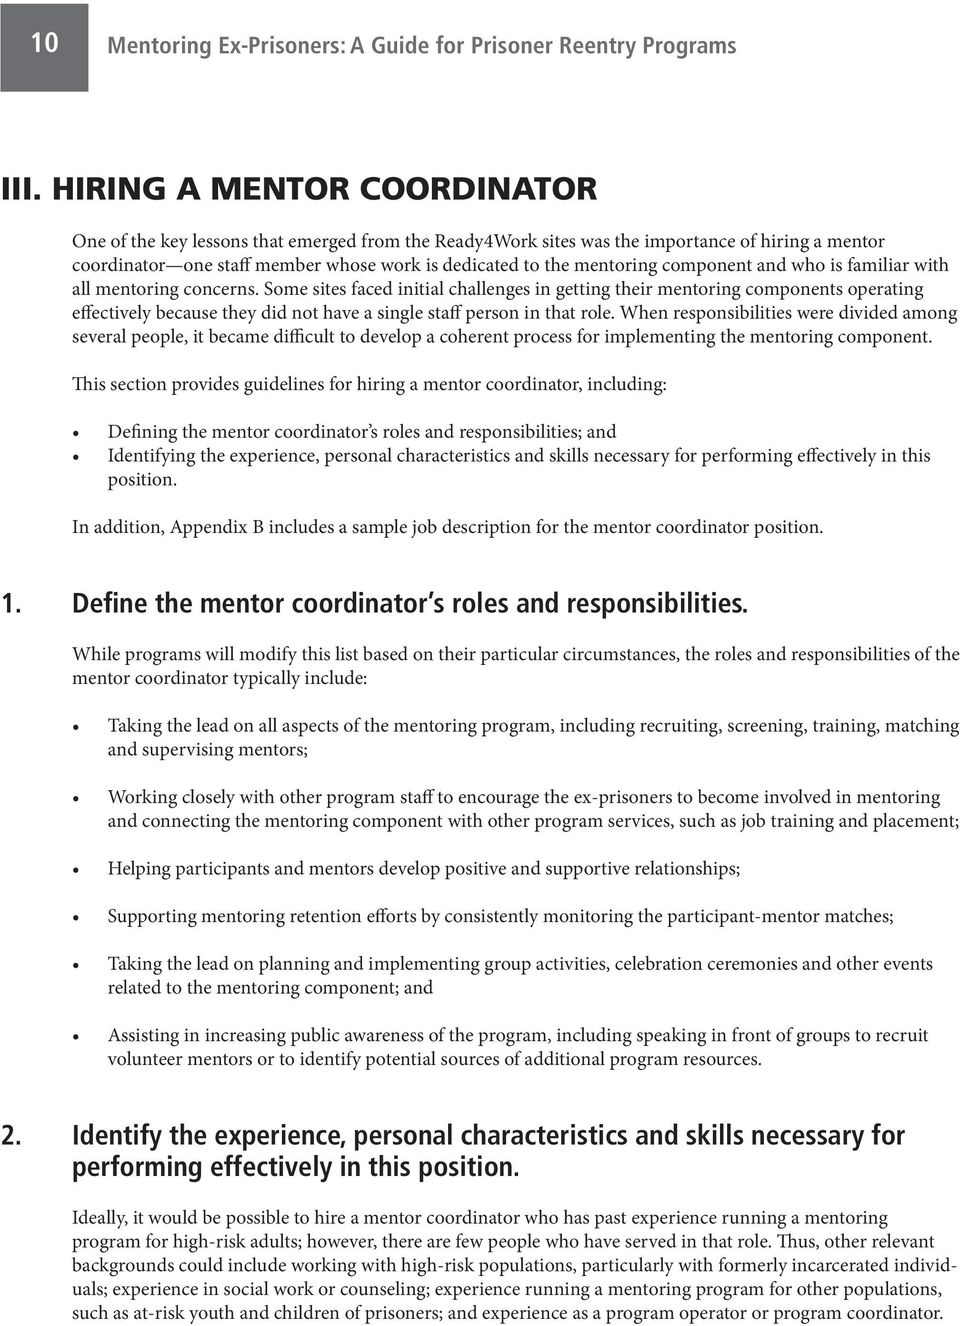 Some sites faced initial challenges in getting their mentoring components operating effectively because they did not have a single staff person in that role.